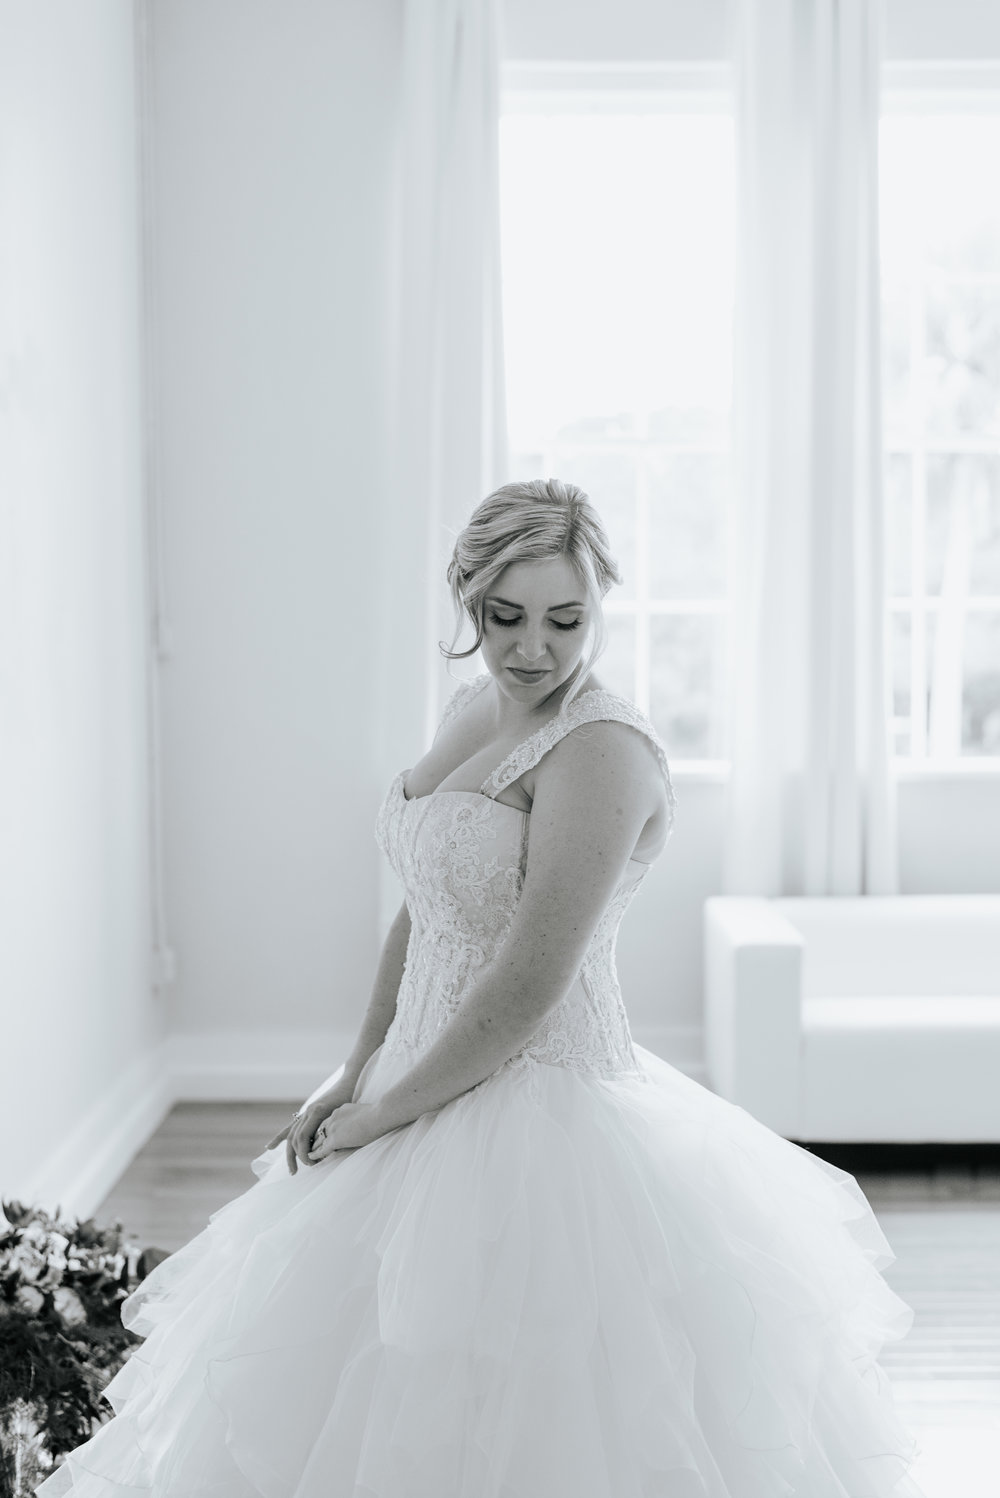 Lauren-Bobby-Wedding-Previews-6808.jpg